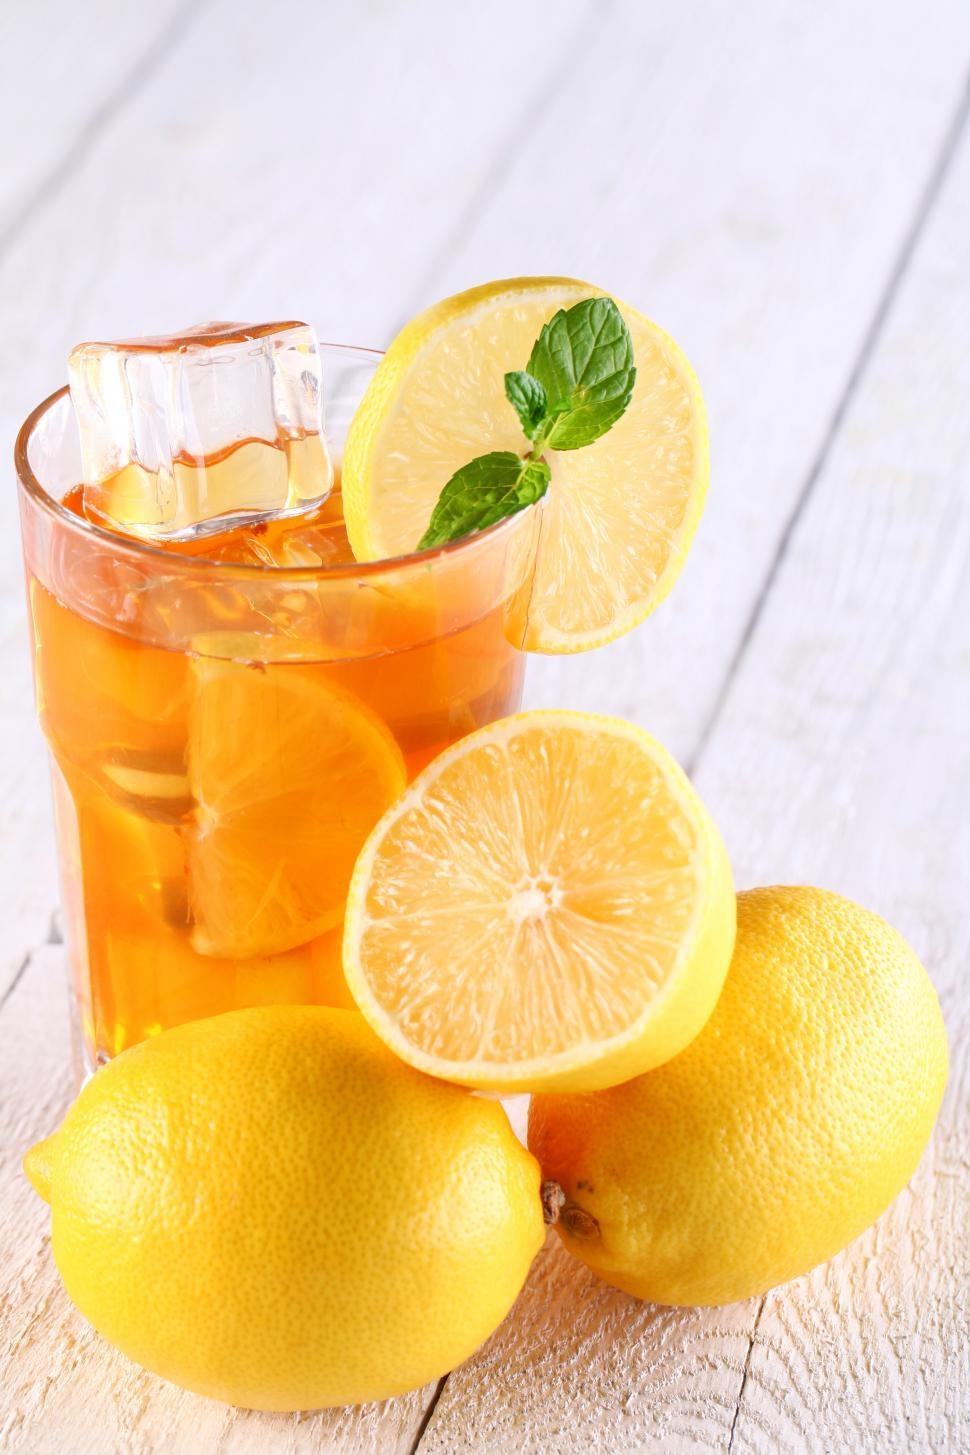 Download Free Stock Photo of Glass of fresh iced tea and lemons